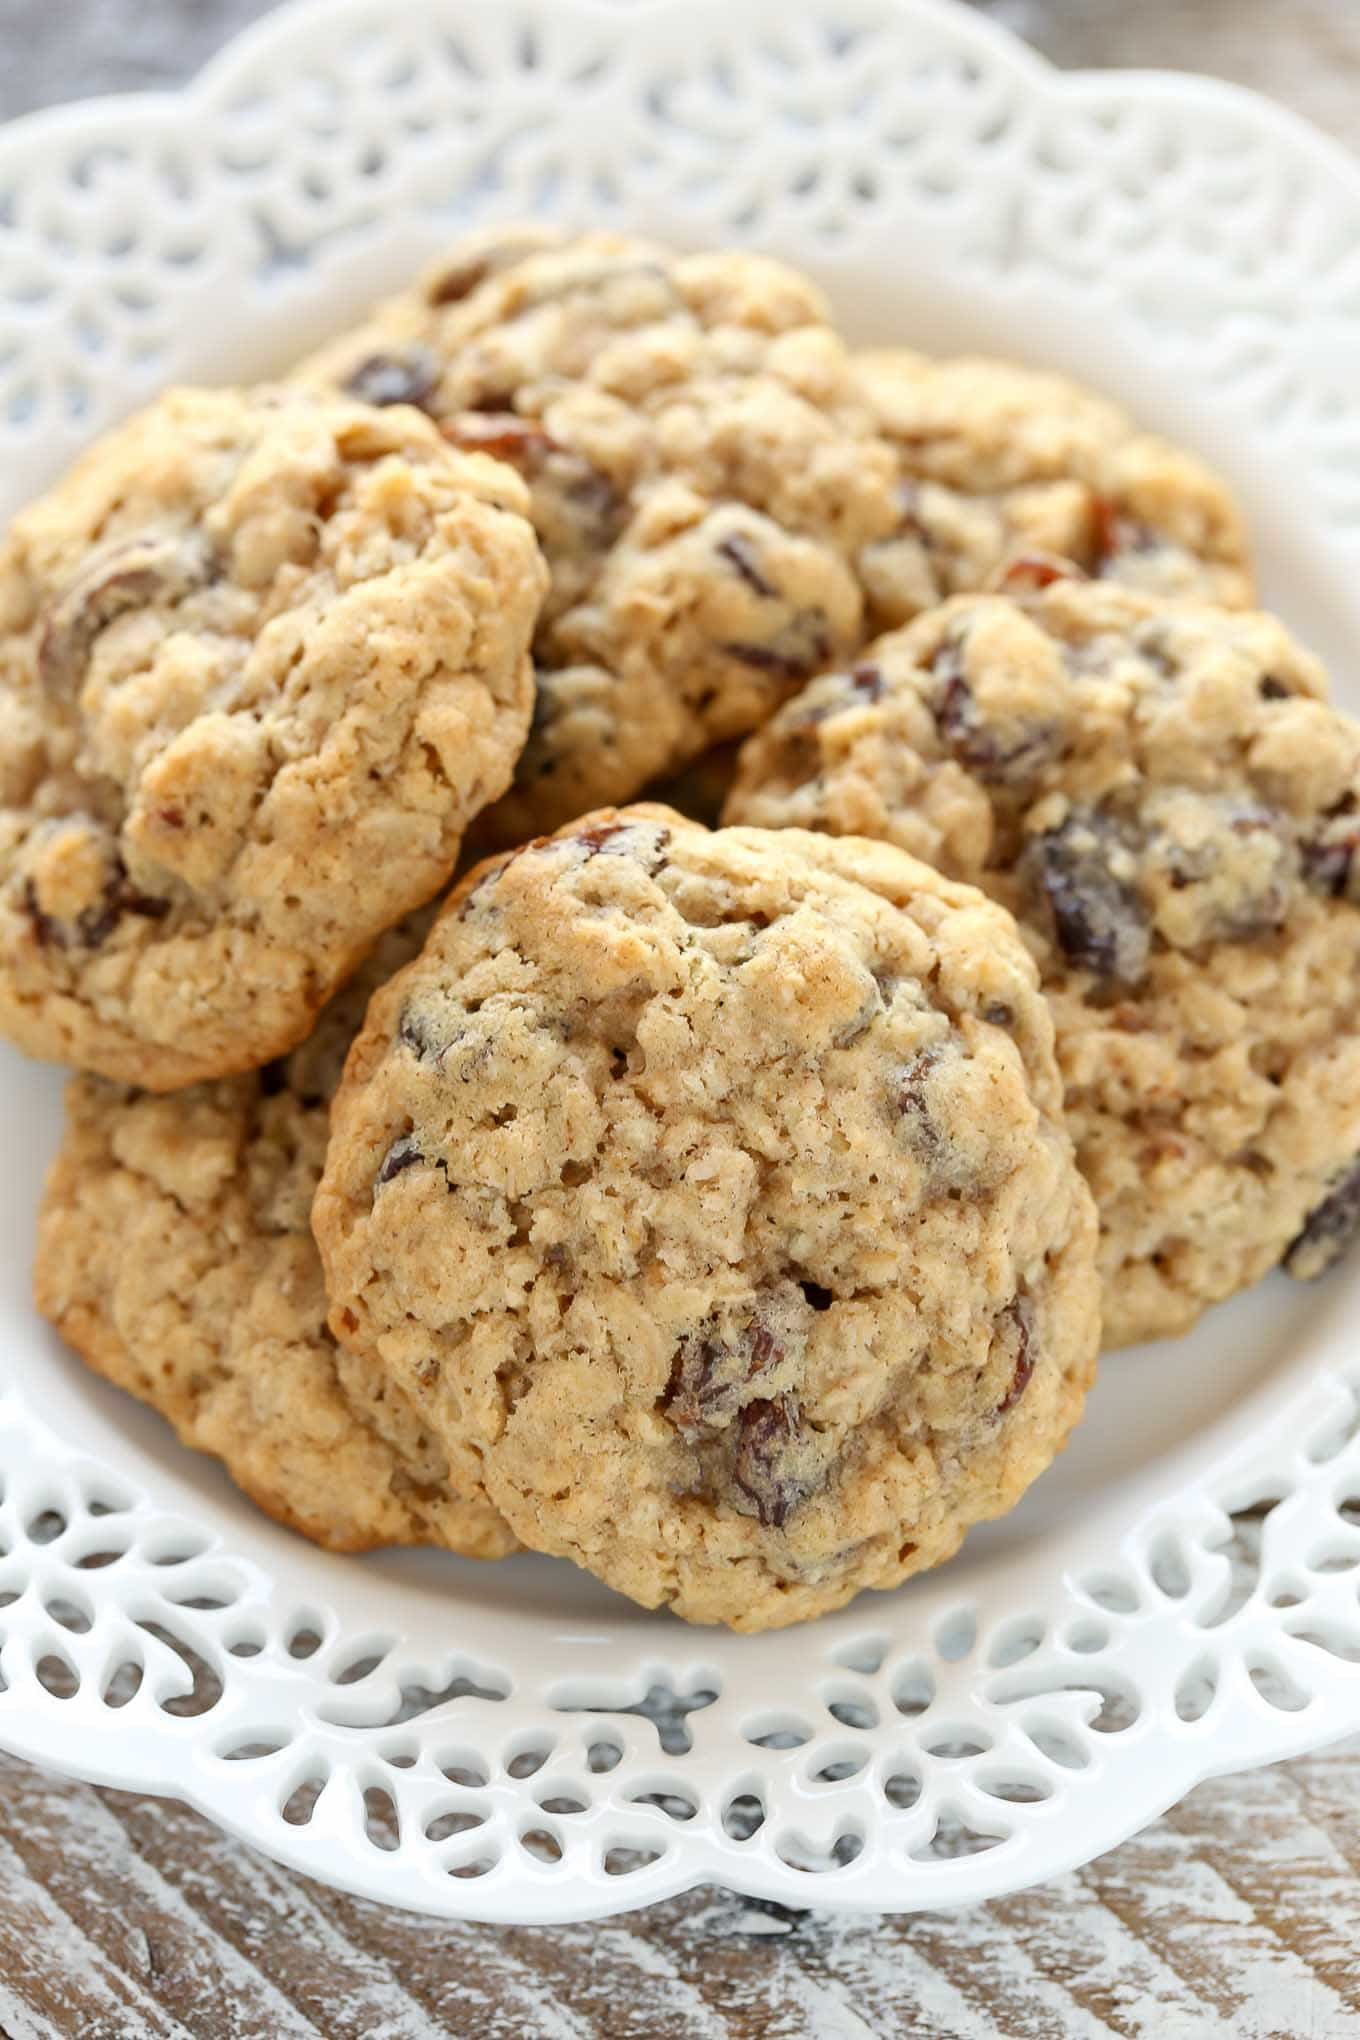 These Soft and Chewy Oatmeal Raisin Cookies are super soft, thick, and loaded with oats and raisins. These cookies are easy to make and so delicious!